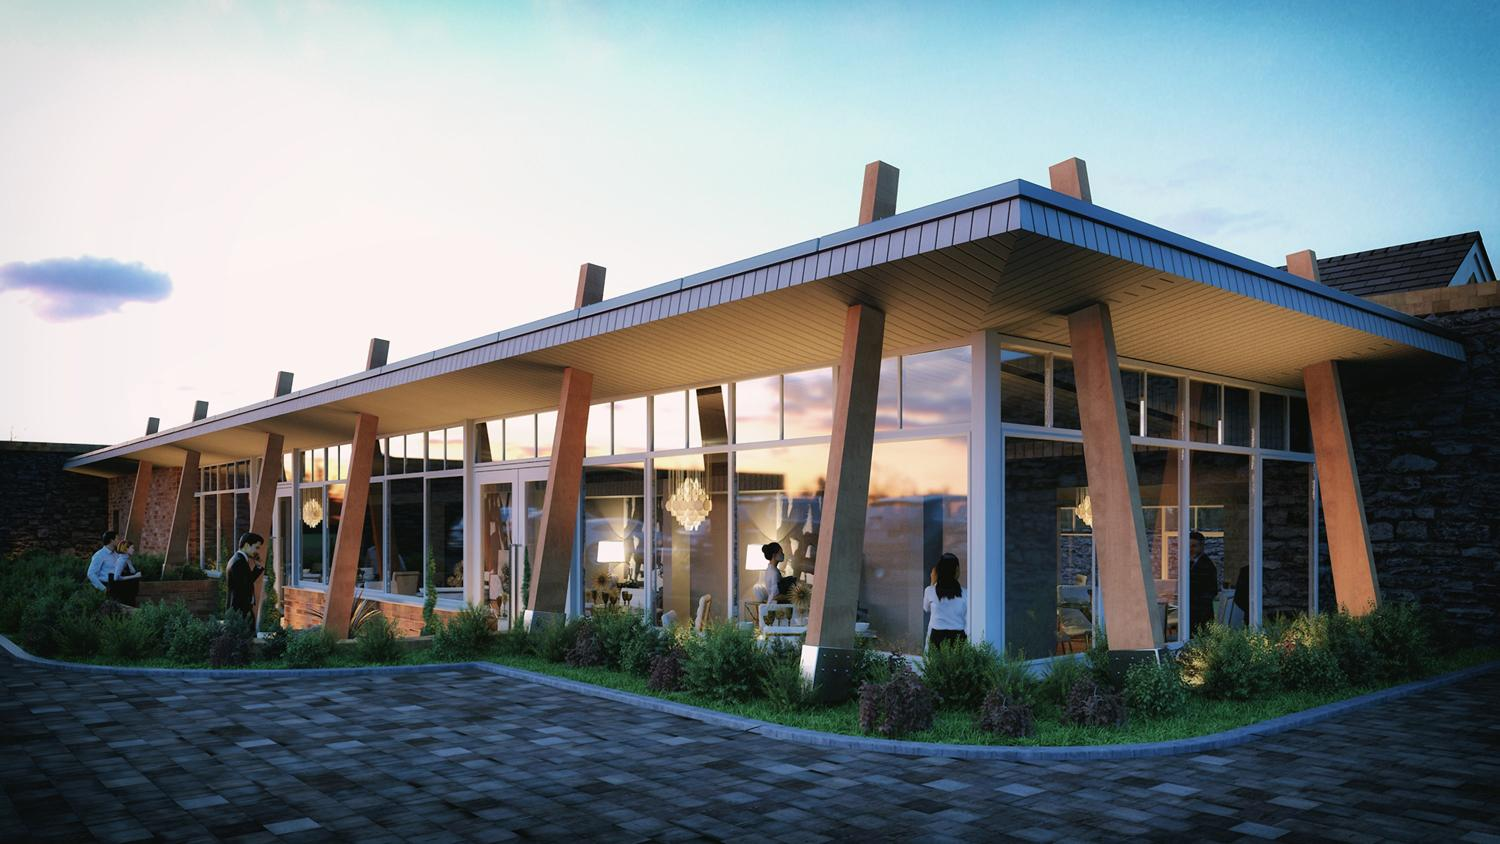 As well as a new spa restaurant, the work will upgrade the existing Fratelli restaurant